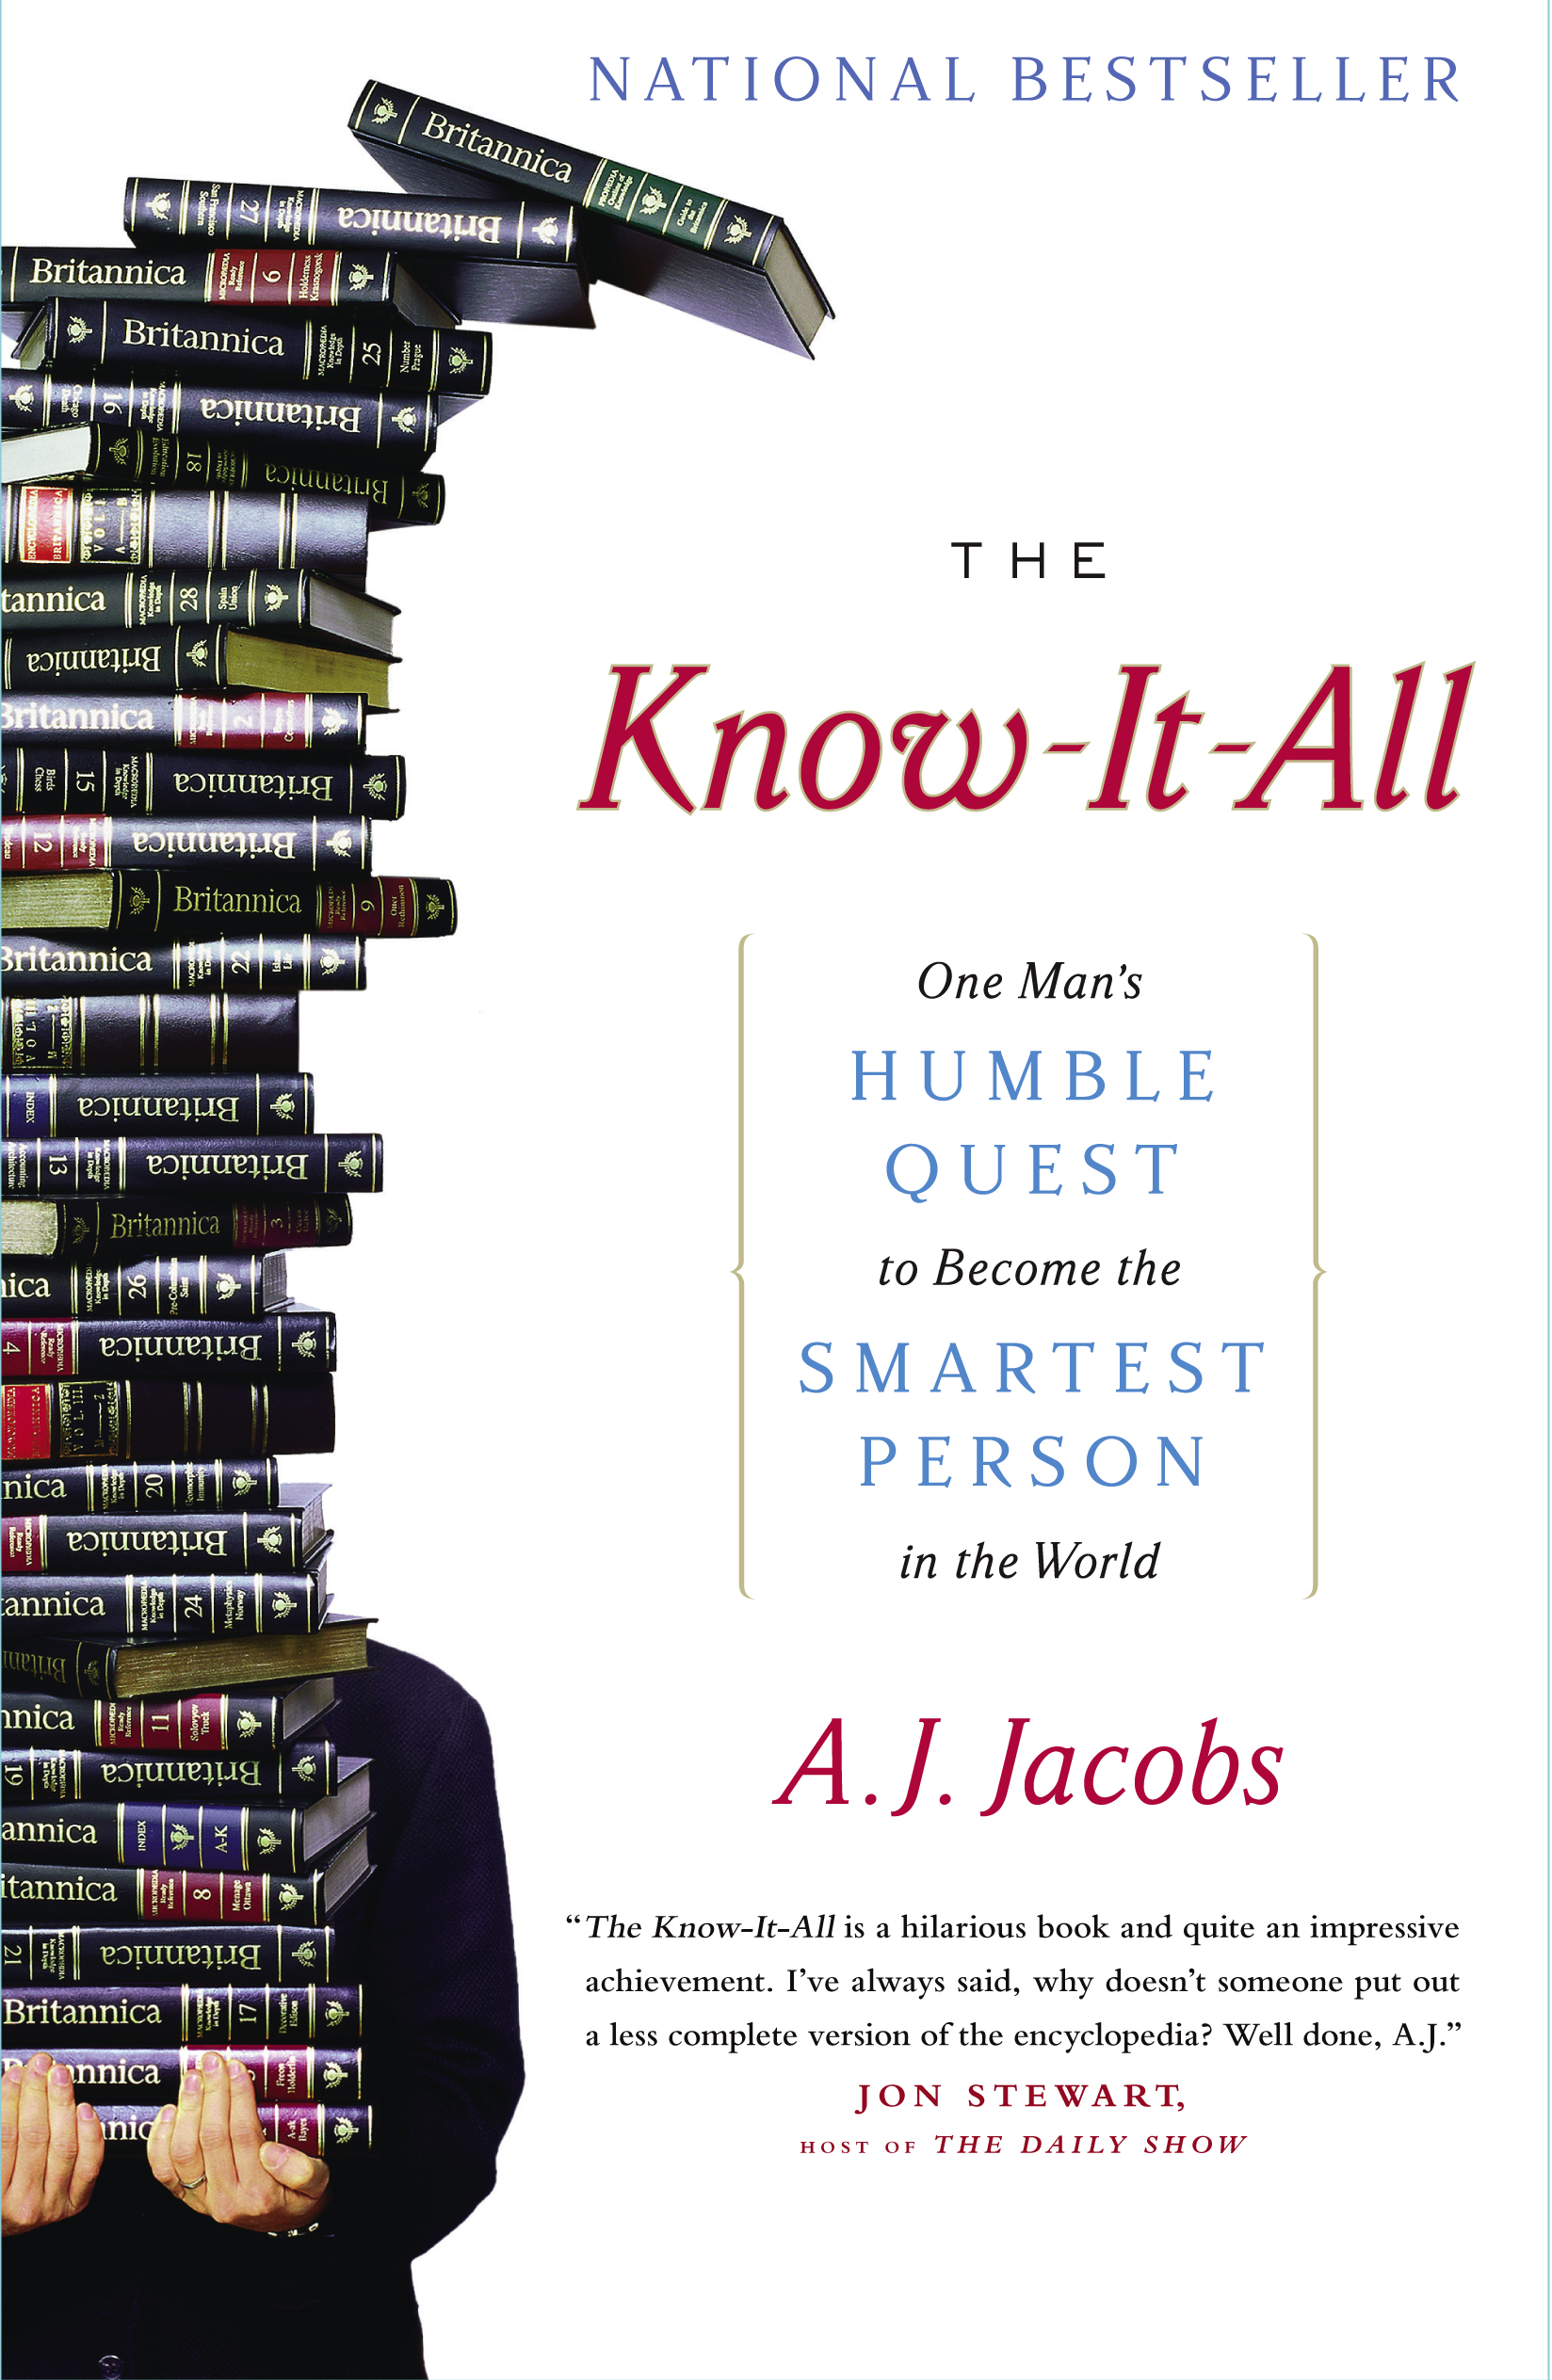 The Know-it-all - One Man's Humble Quest To Become The Smartest Person In The World, A J Jacobs